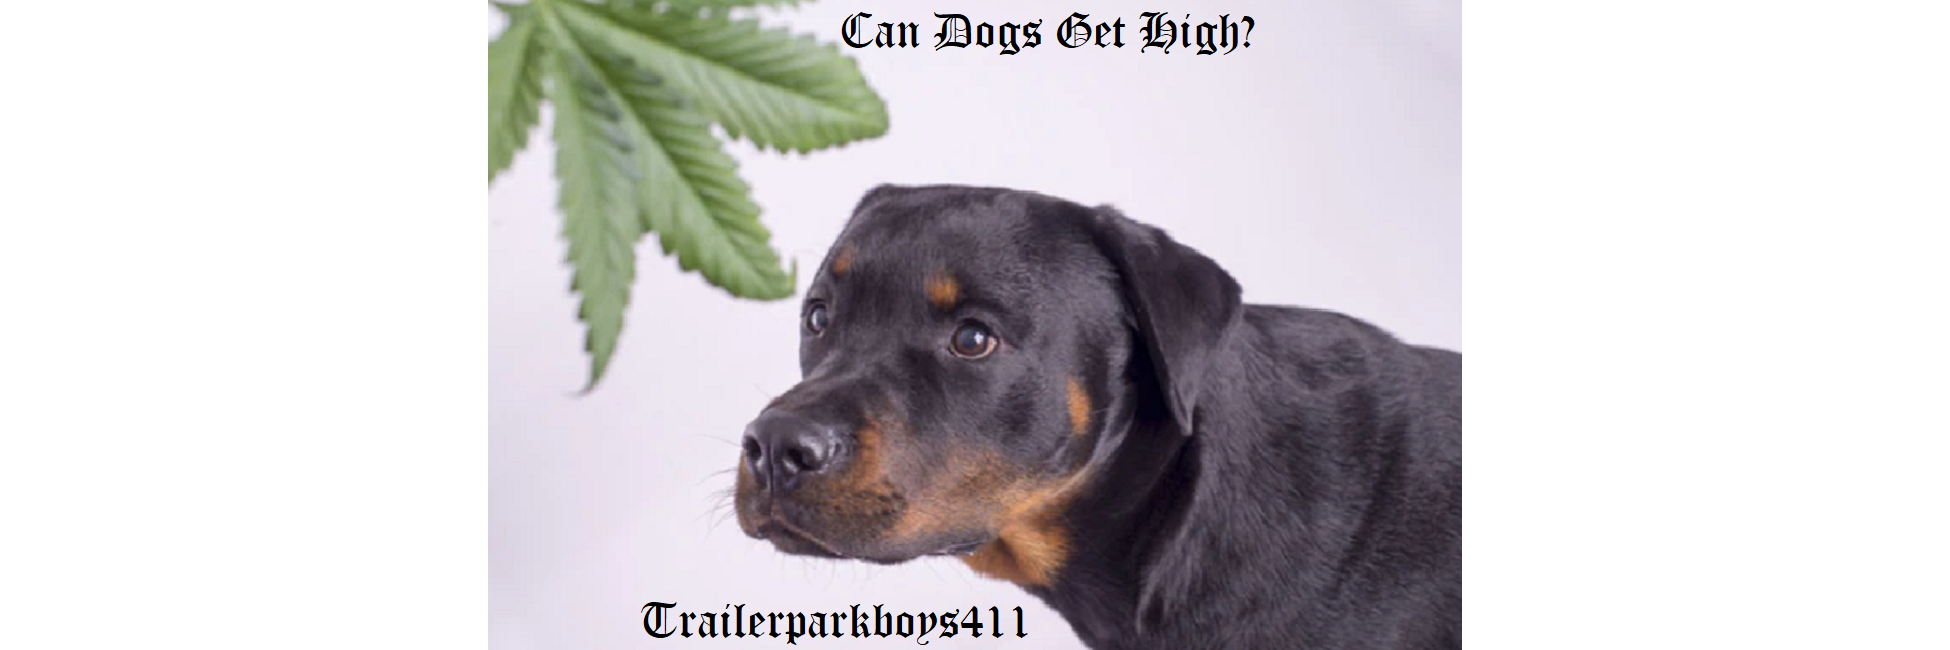 Can Dogs Get High